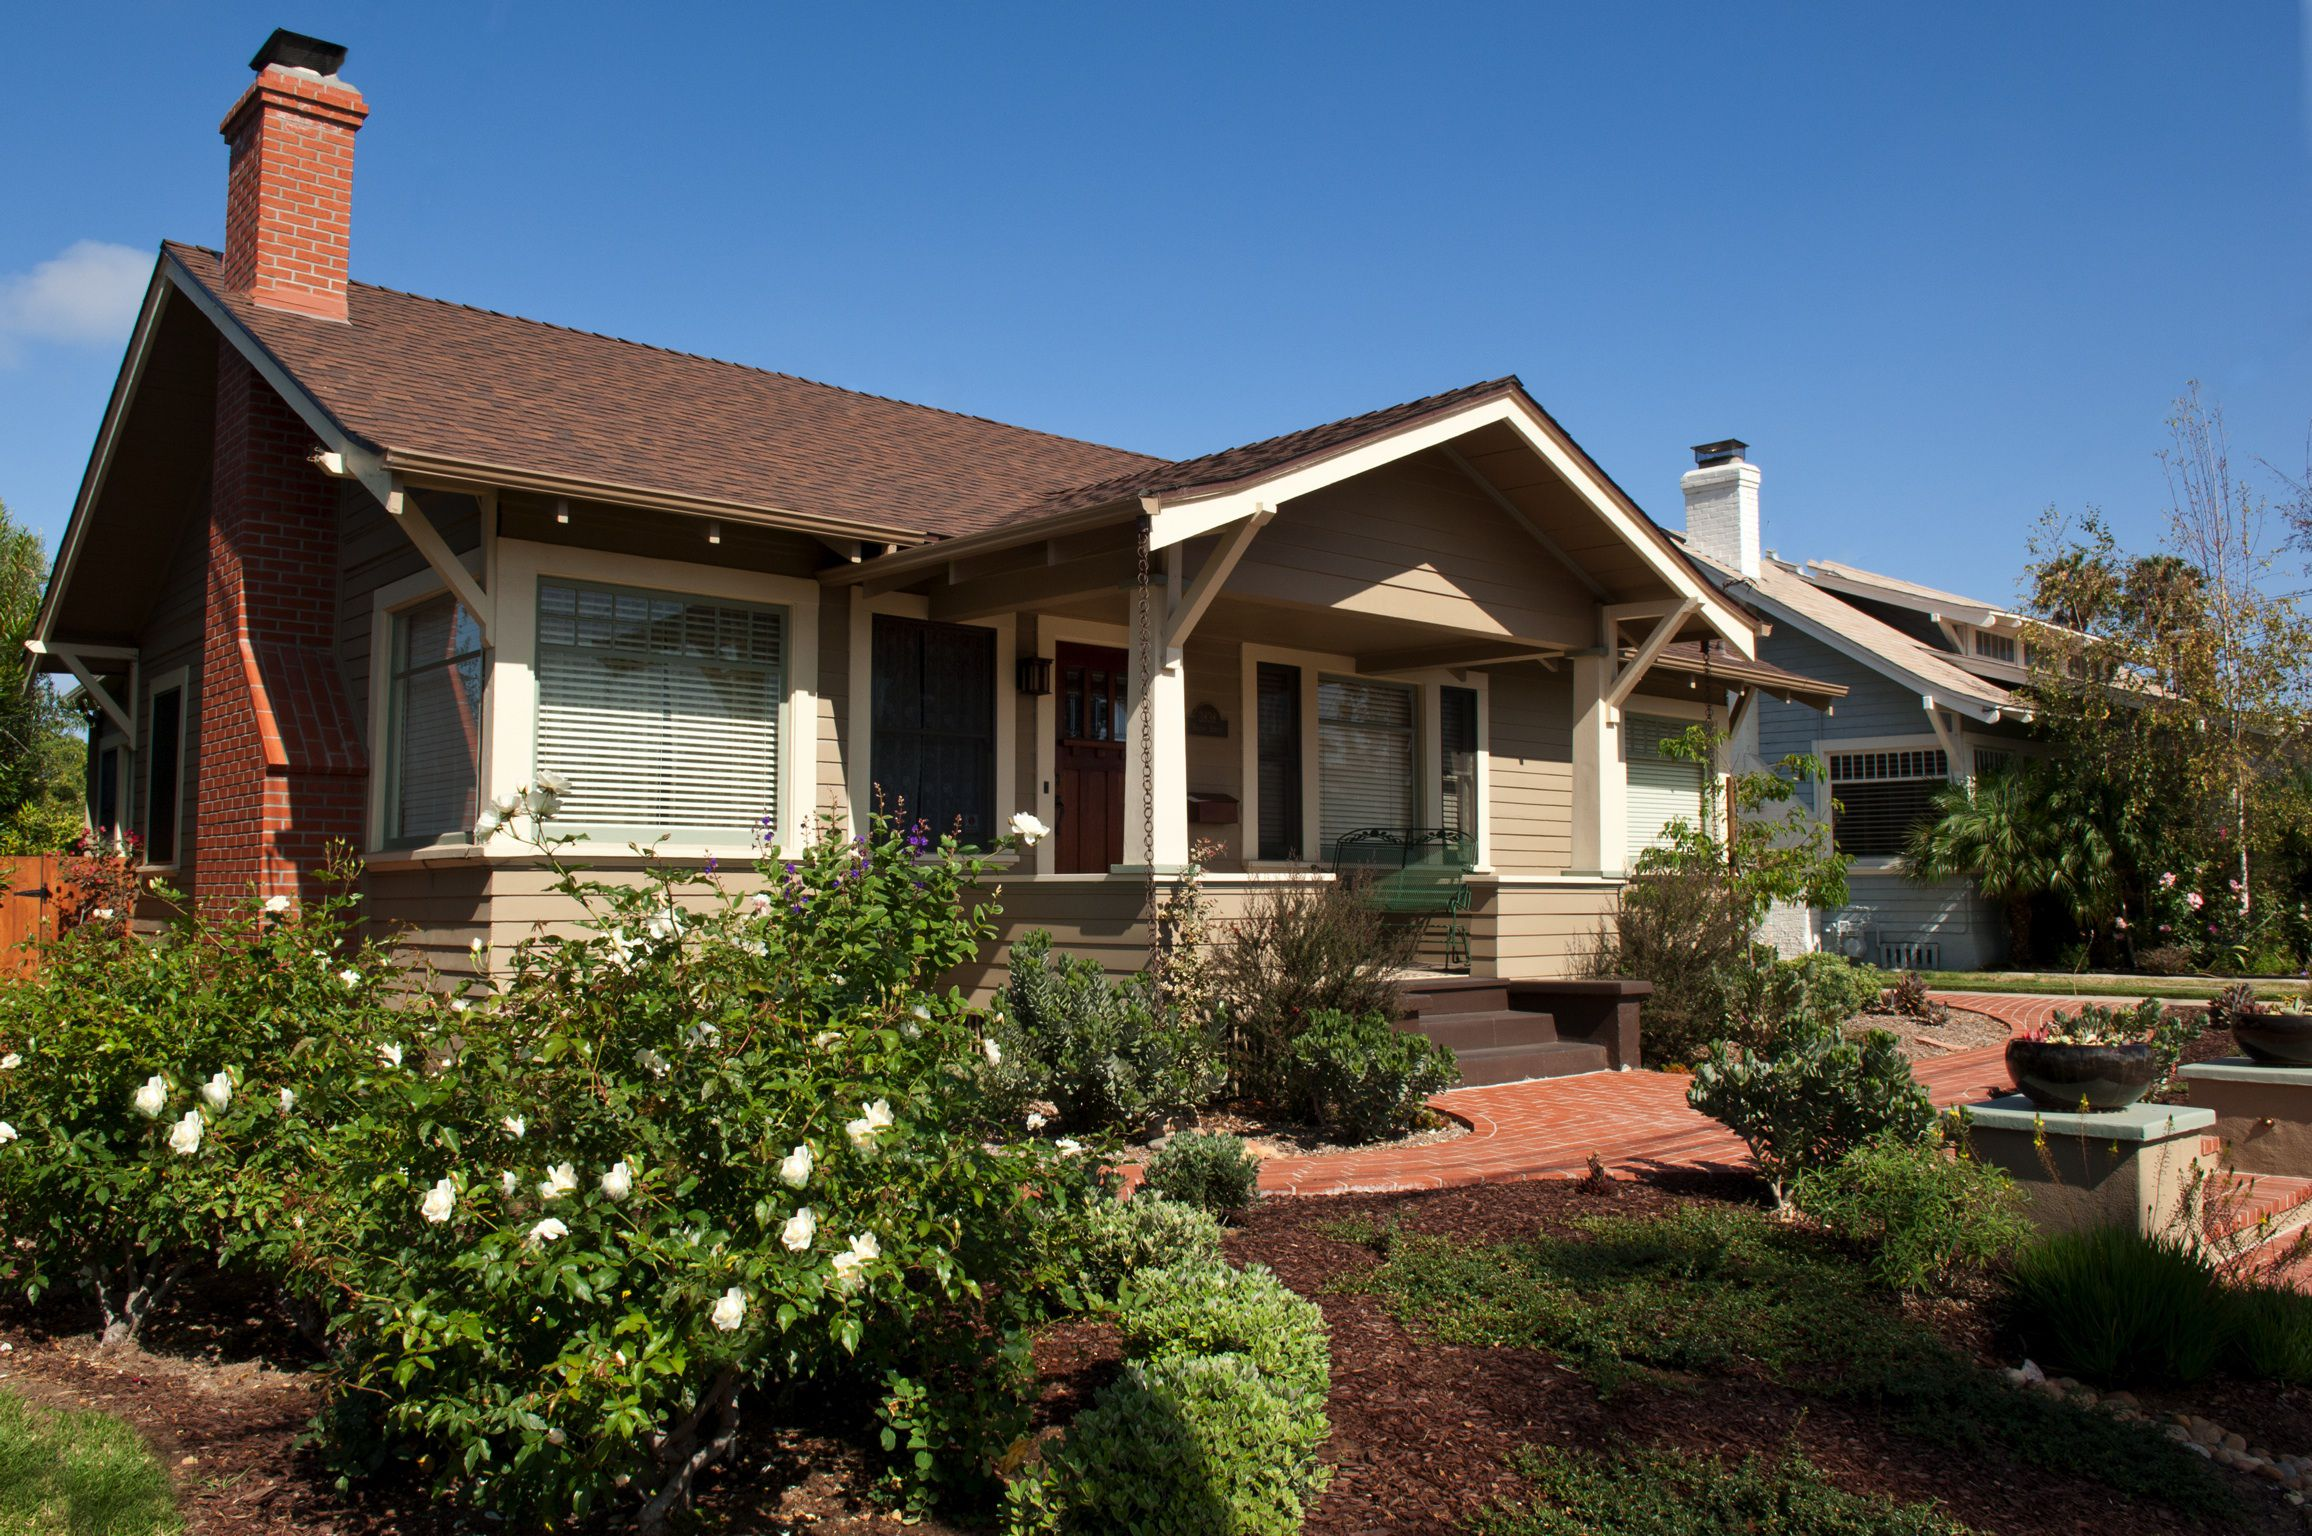 All about the american bungalow 1905 1930 - What is a bungalow style home ...